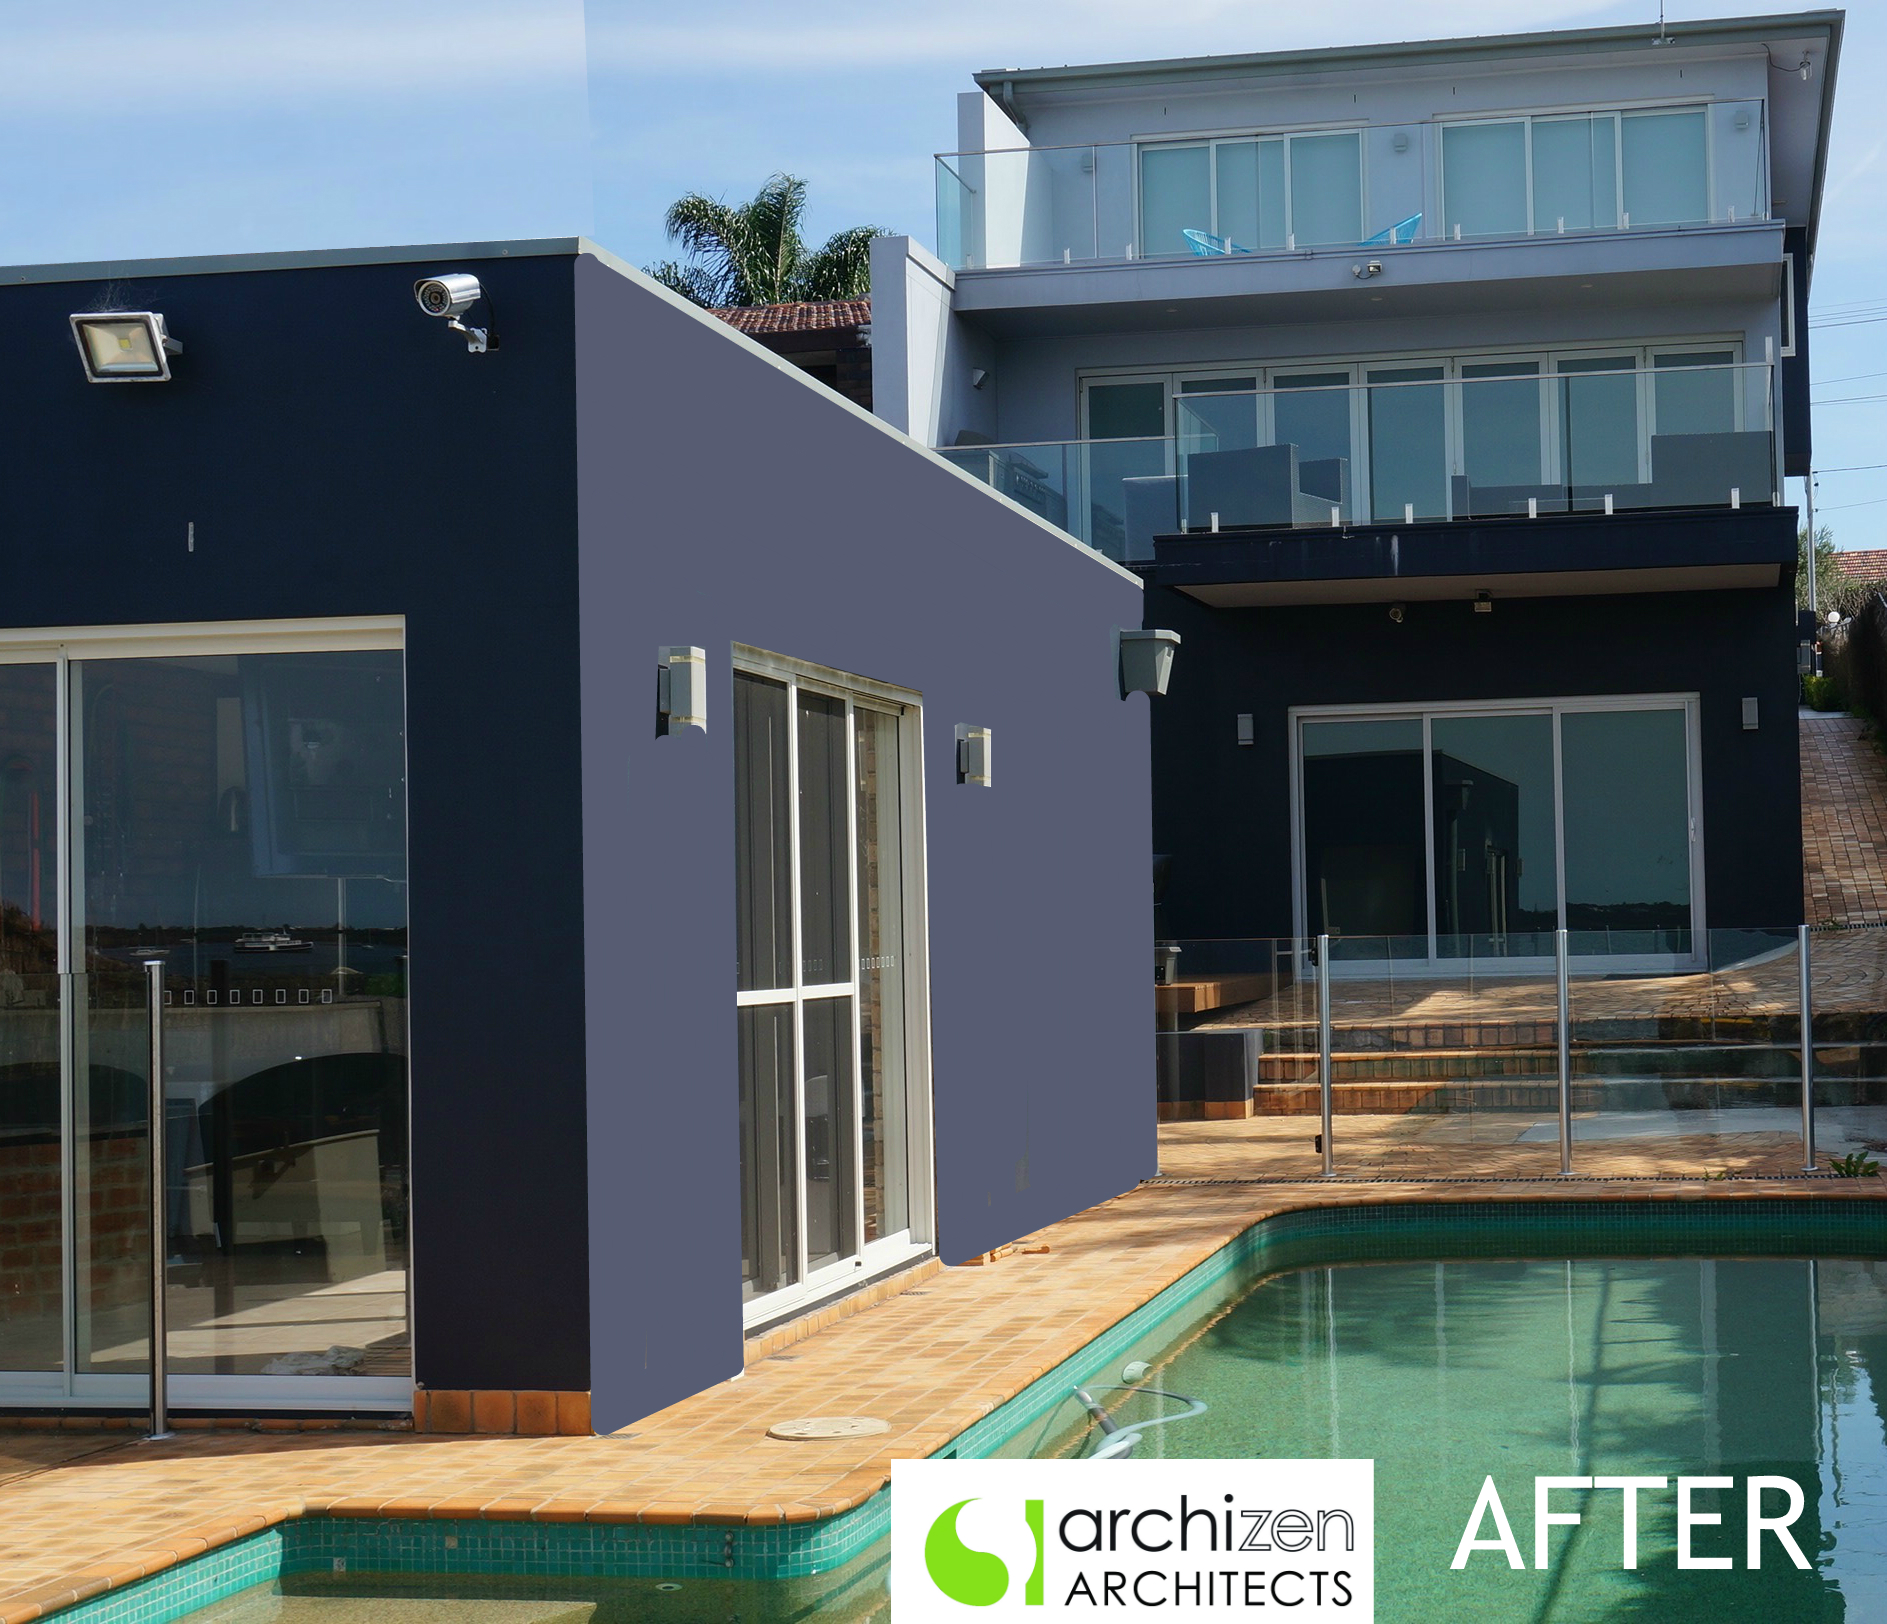 Water Front Modern Contemporary Renovation New Home Sydney Architects Archizen Design Taren Point Sutherland Shire Council Georges River